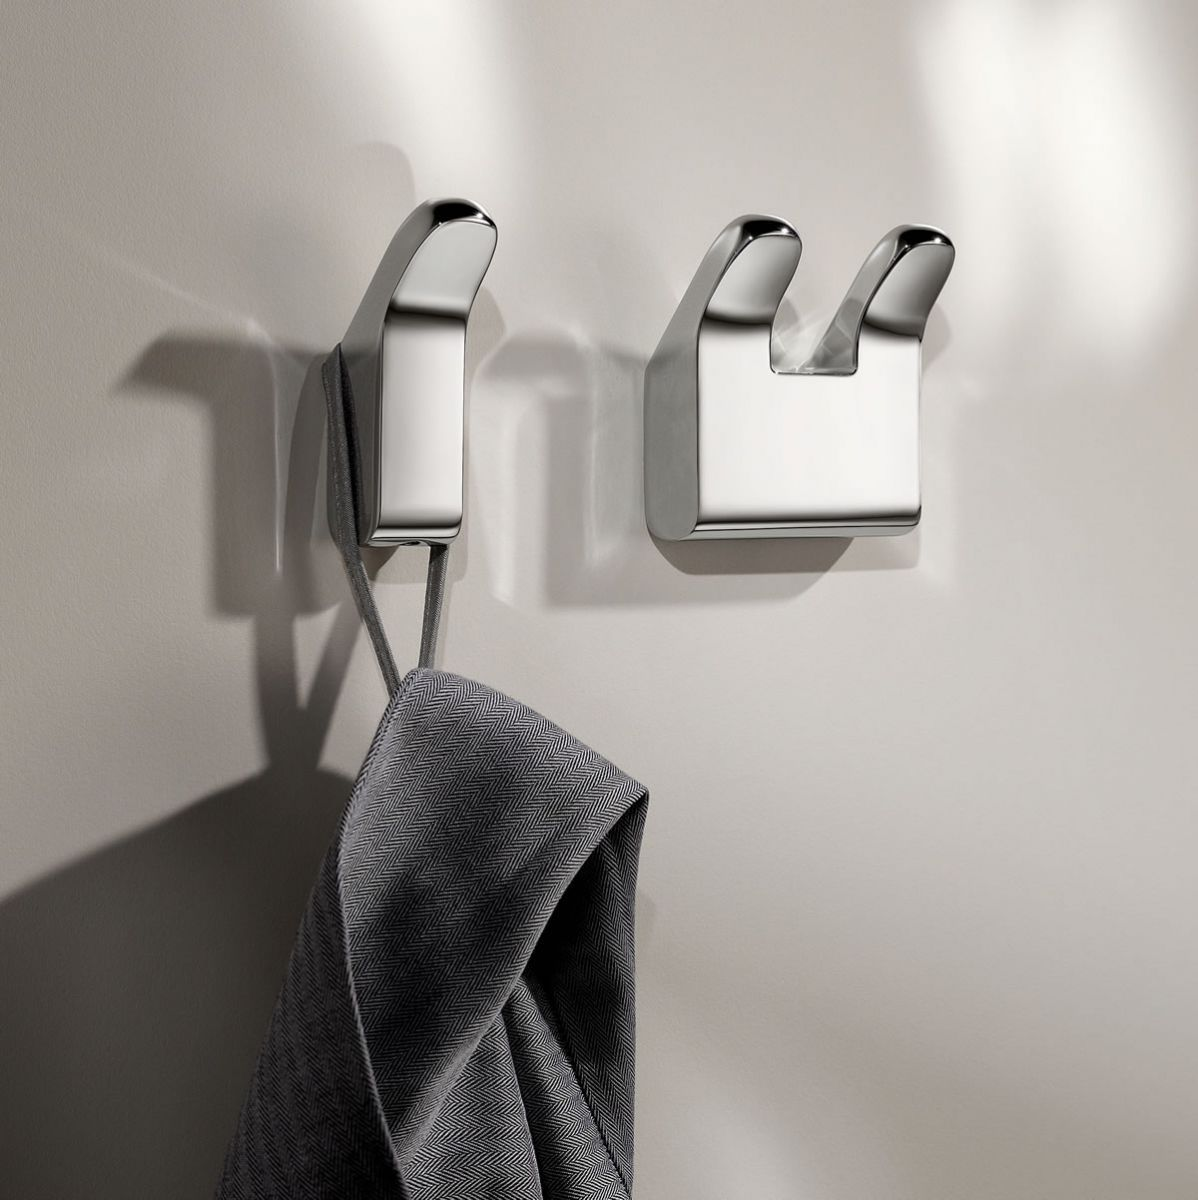 Pin by Cathi Ariela on Collection | Pinterest | Bathroom accessories ...